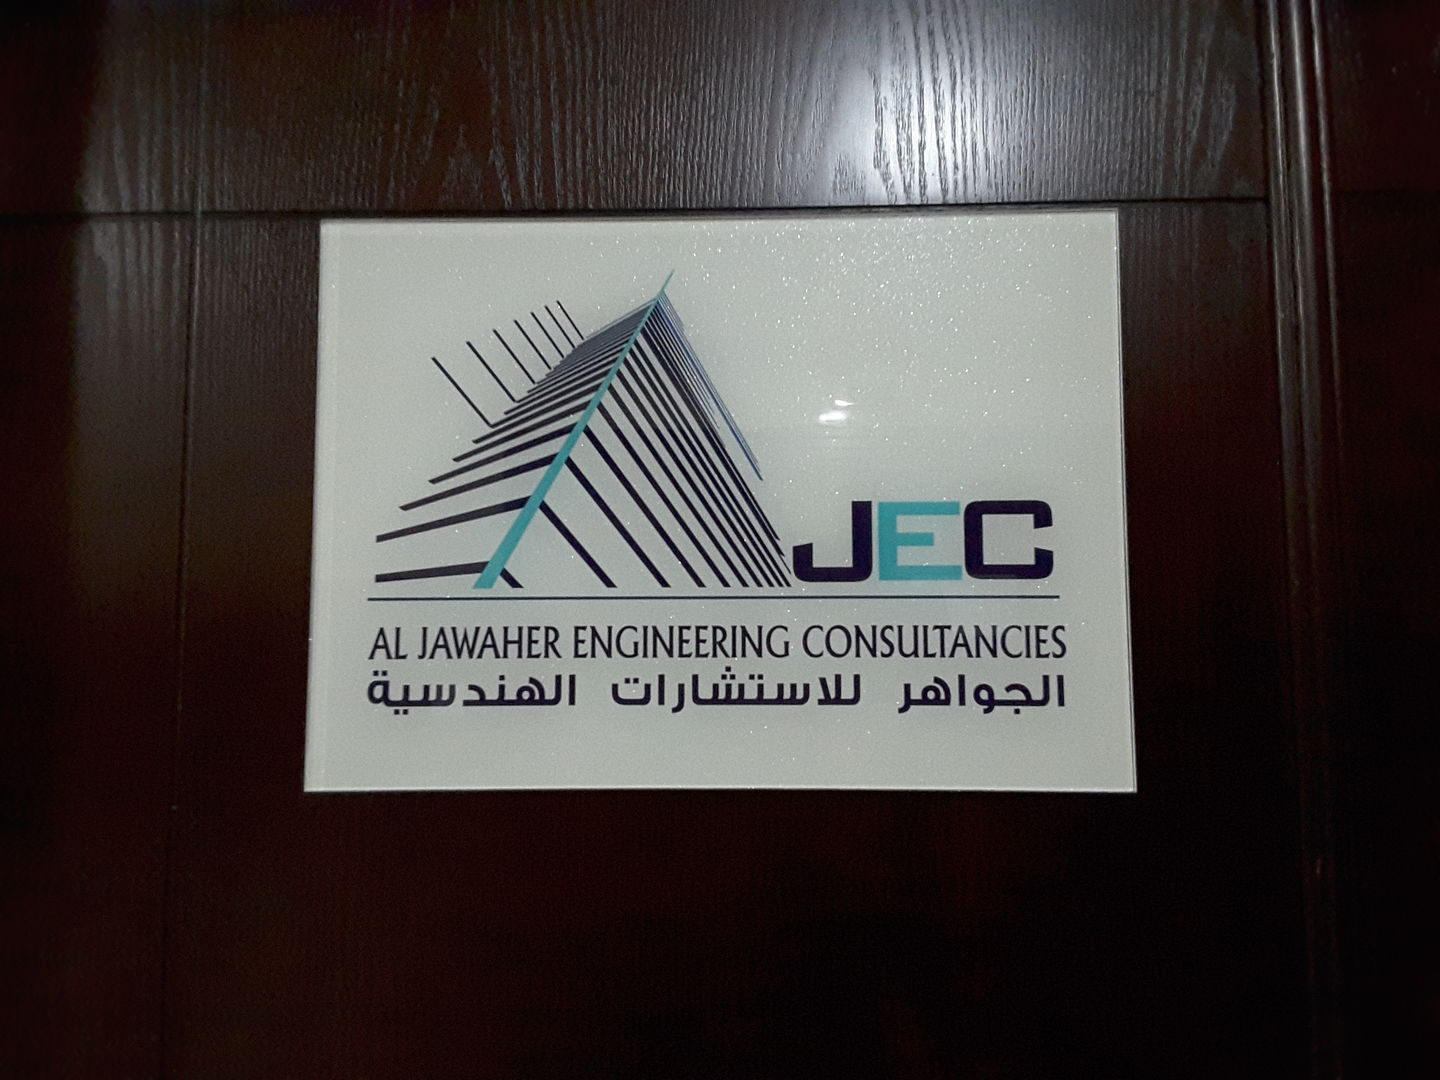 Al Jawaher Engineering Consultancies, (Architects & Design Services